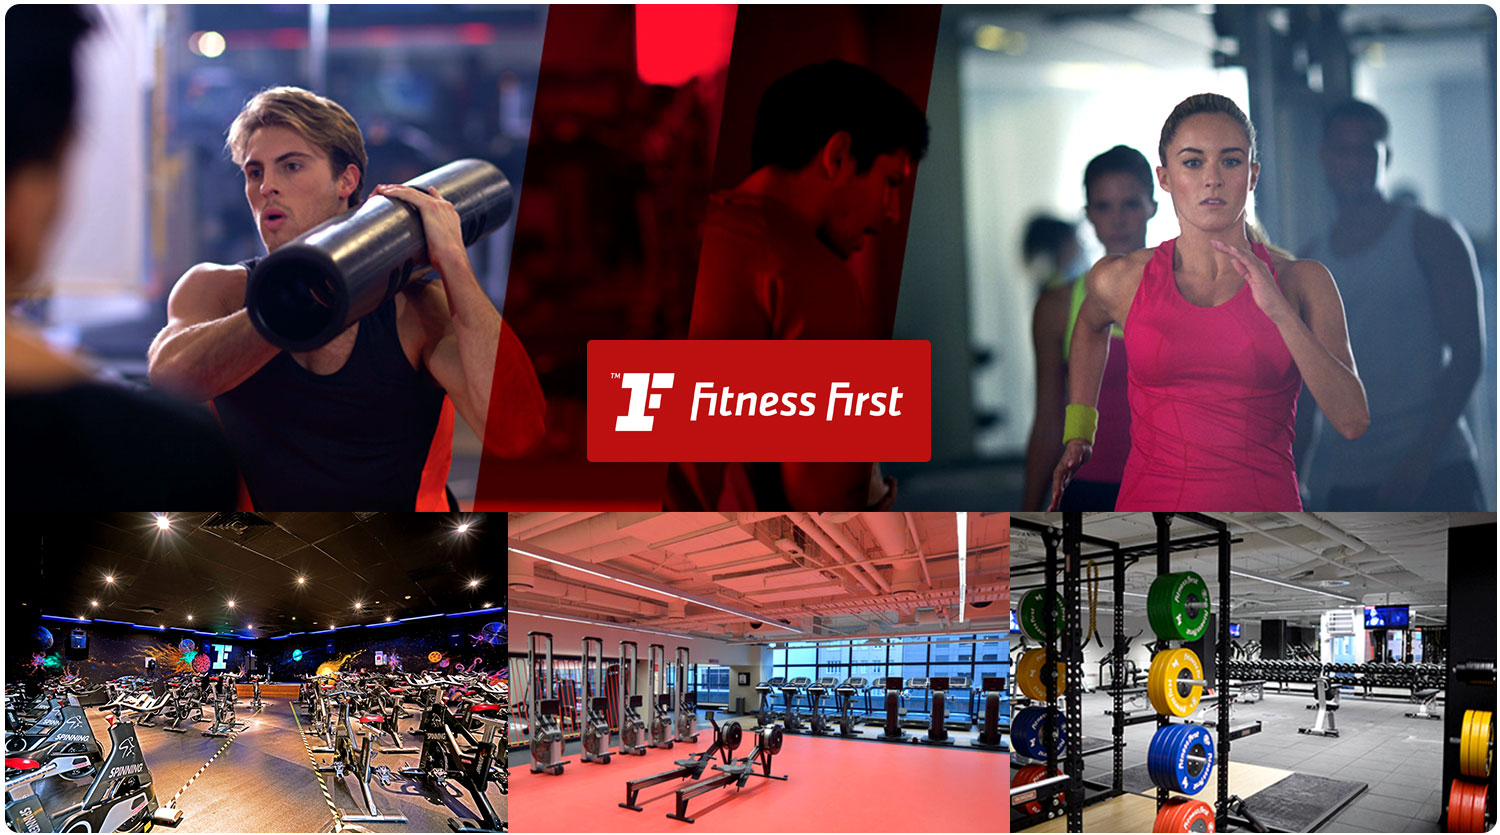 Start your Fitness Journey with Fitness First with only $9.95 for 1 week at Fitness First Platinum Wanda Beach Cronulla. Experience our first class gym and freestyle classes inc. Yoga, Pilates, Bootcamp and more. Take the first step with Fitness First Platinum Wanda Beach Cronulla.